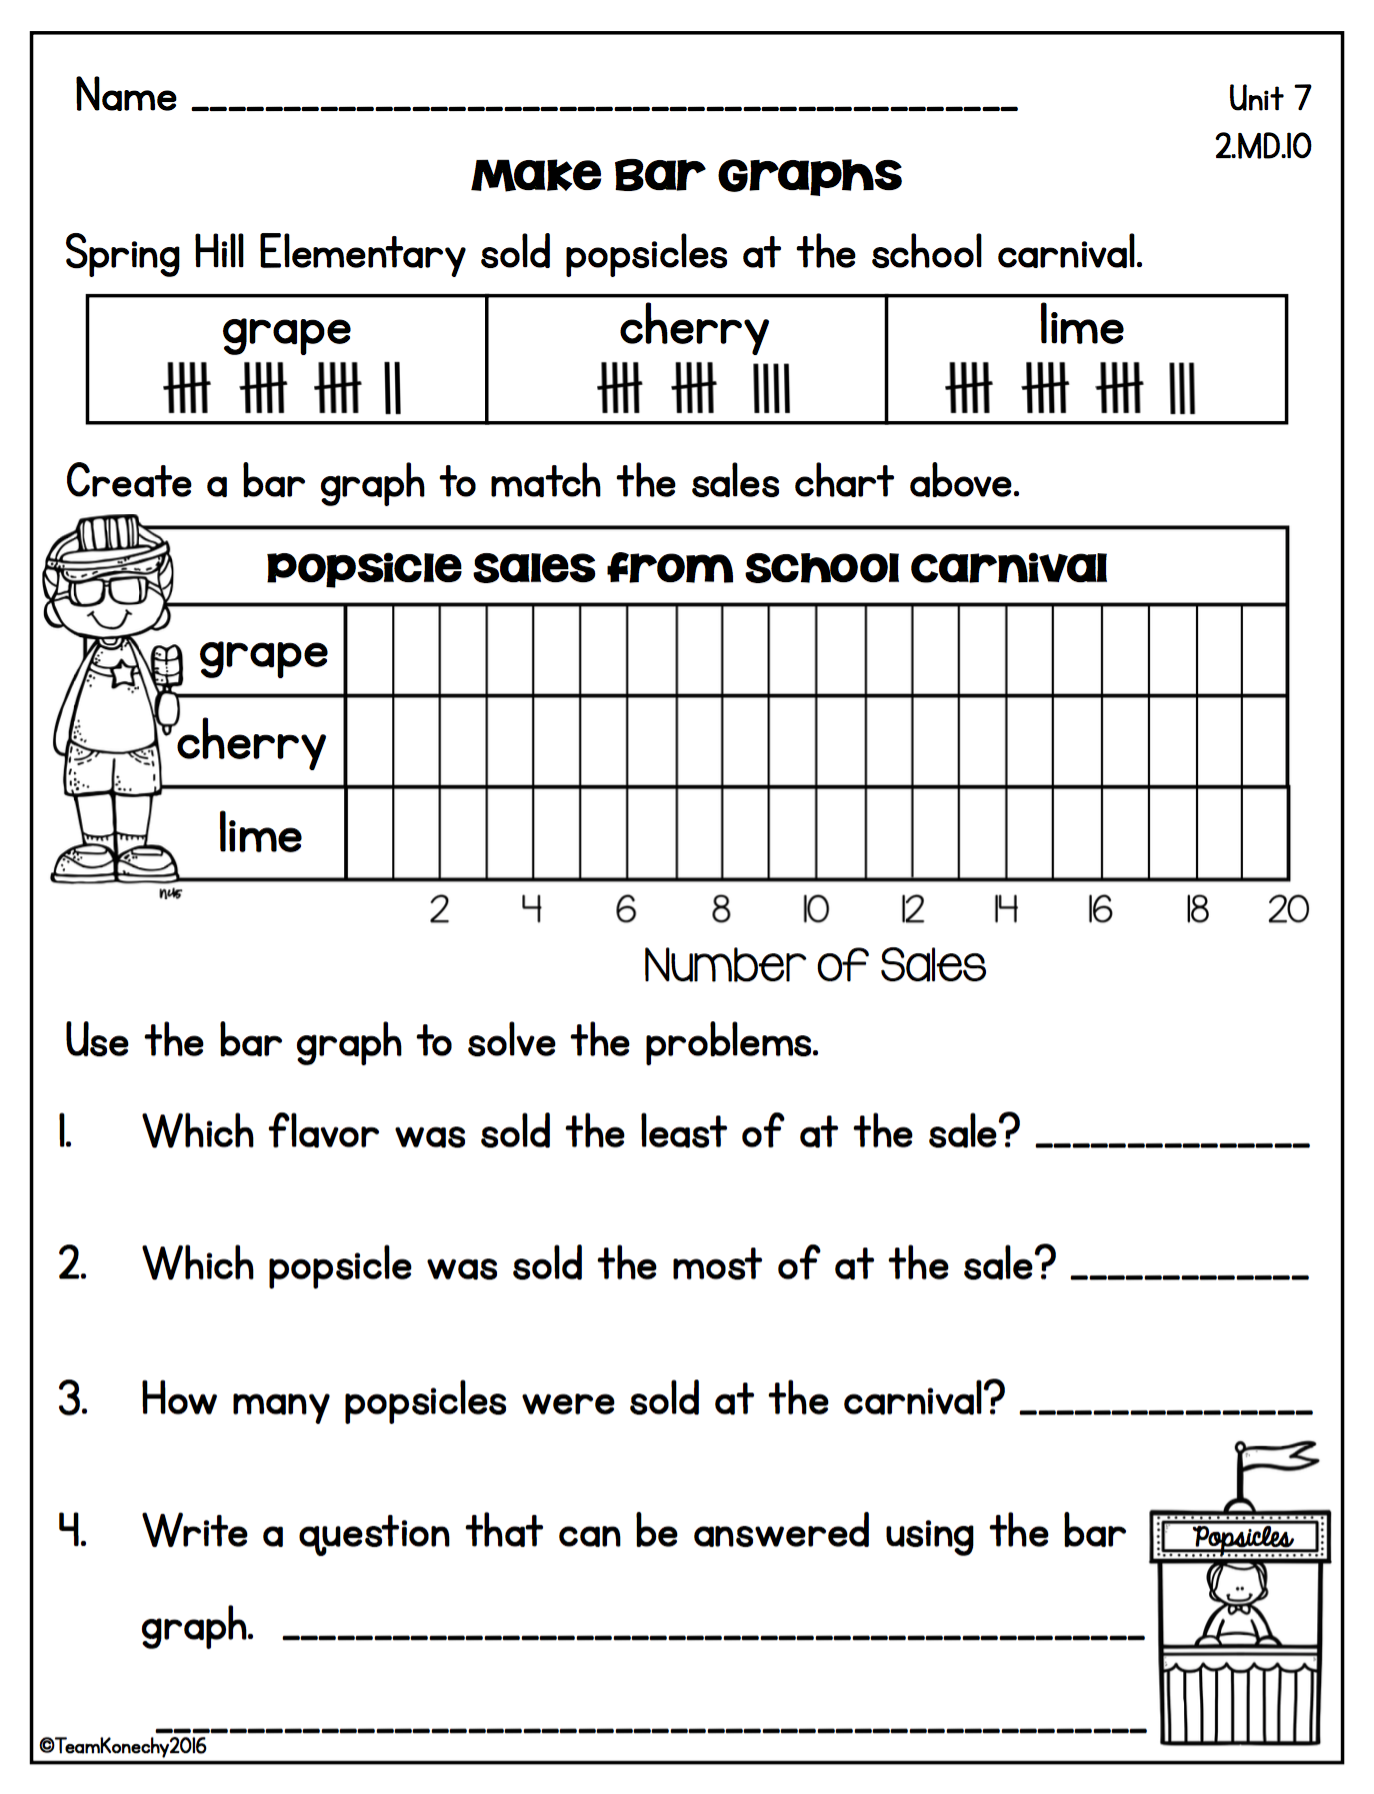 Graphing - Daily Math Lessons - Unit 7 | Tally chart, Bar graphs and ...